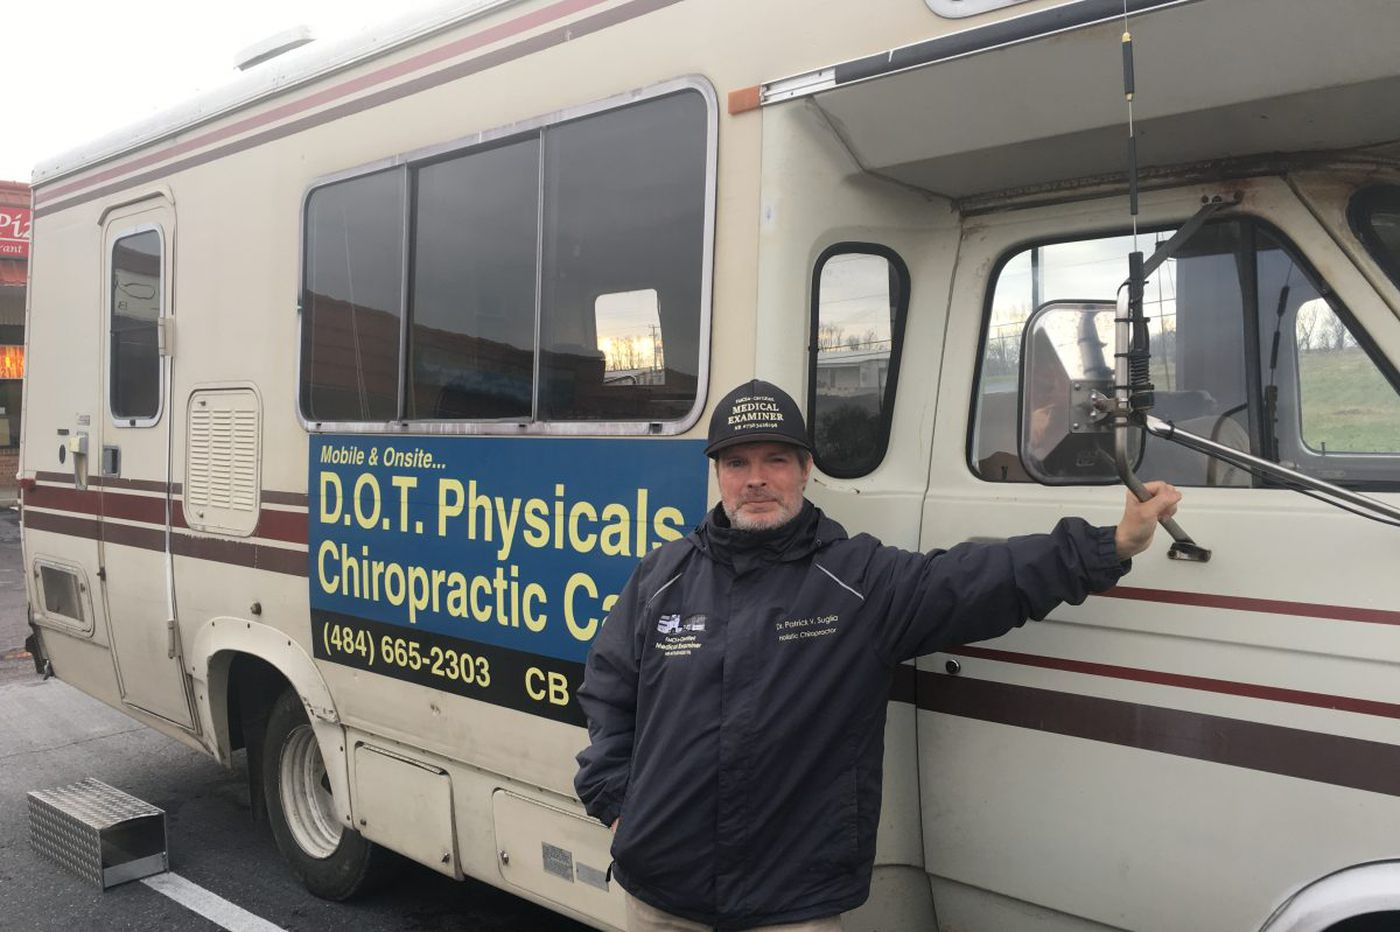 Chiropractor/minister travels Pa. roads in old RV giving trucker exams